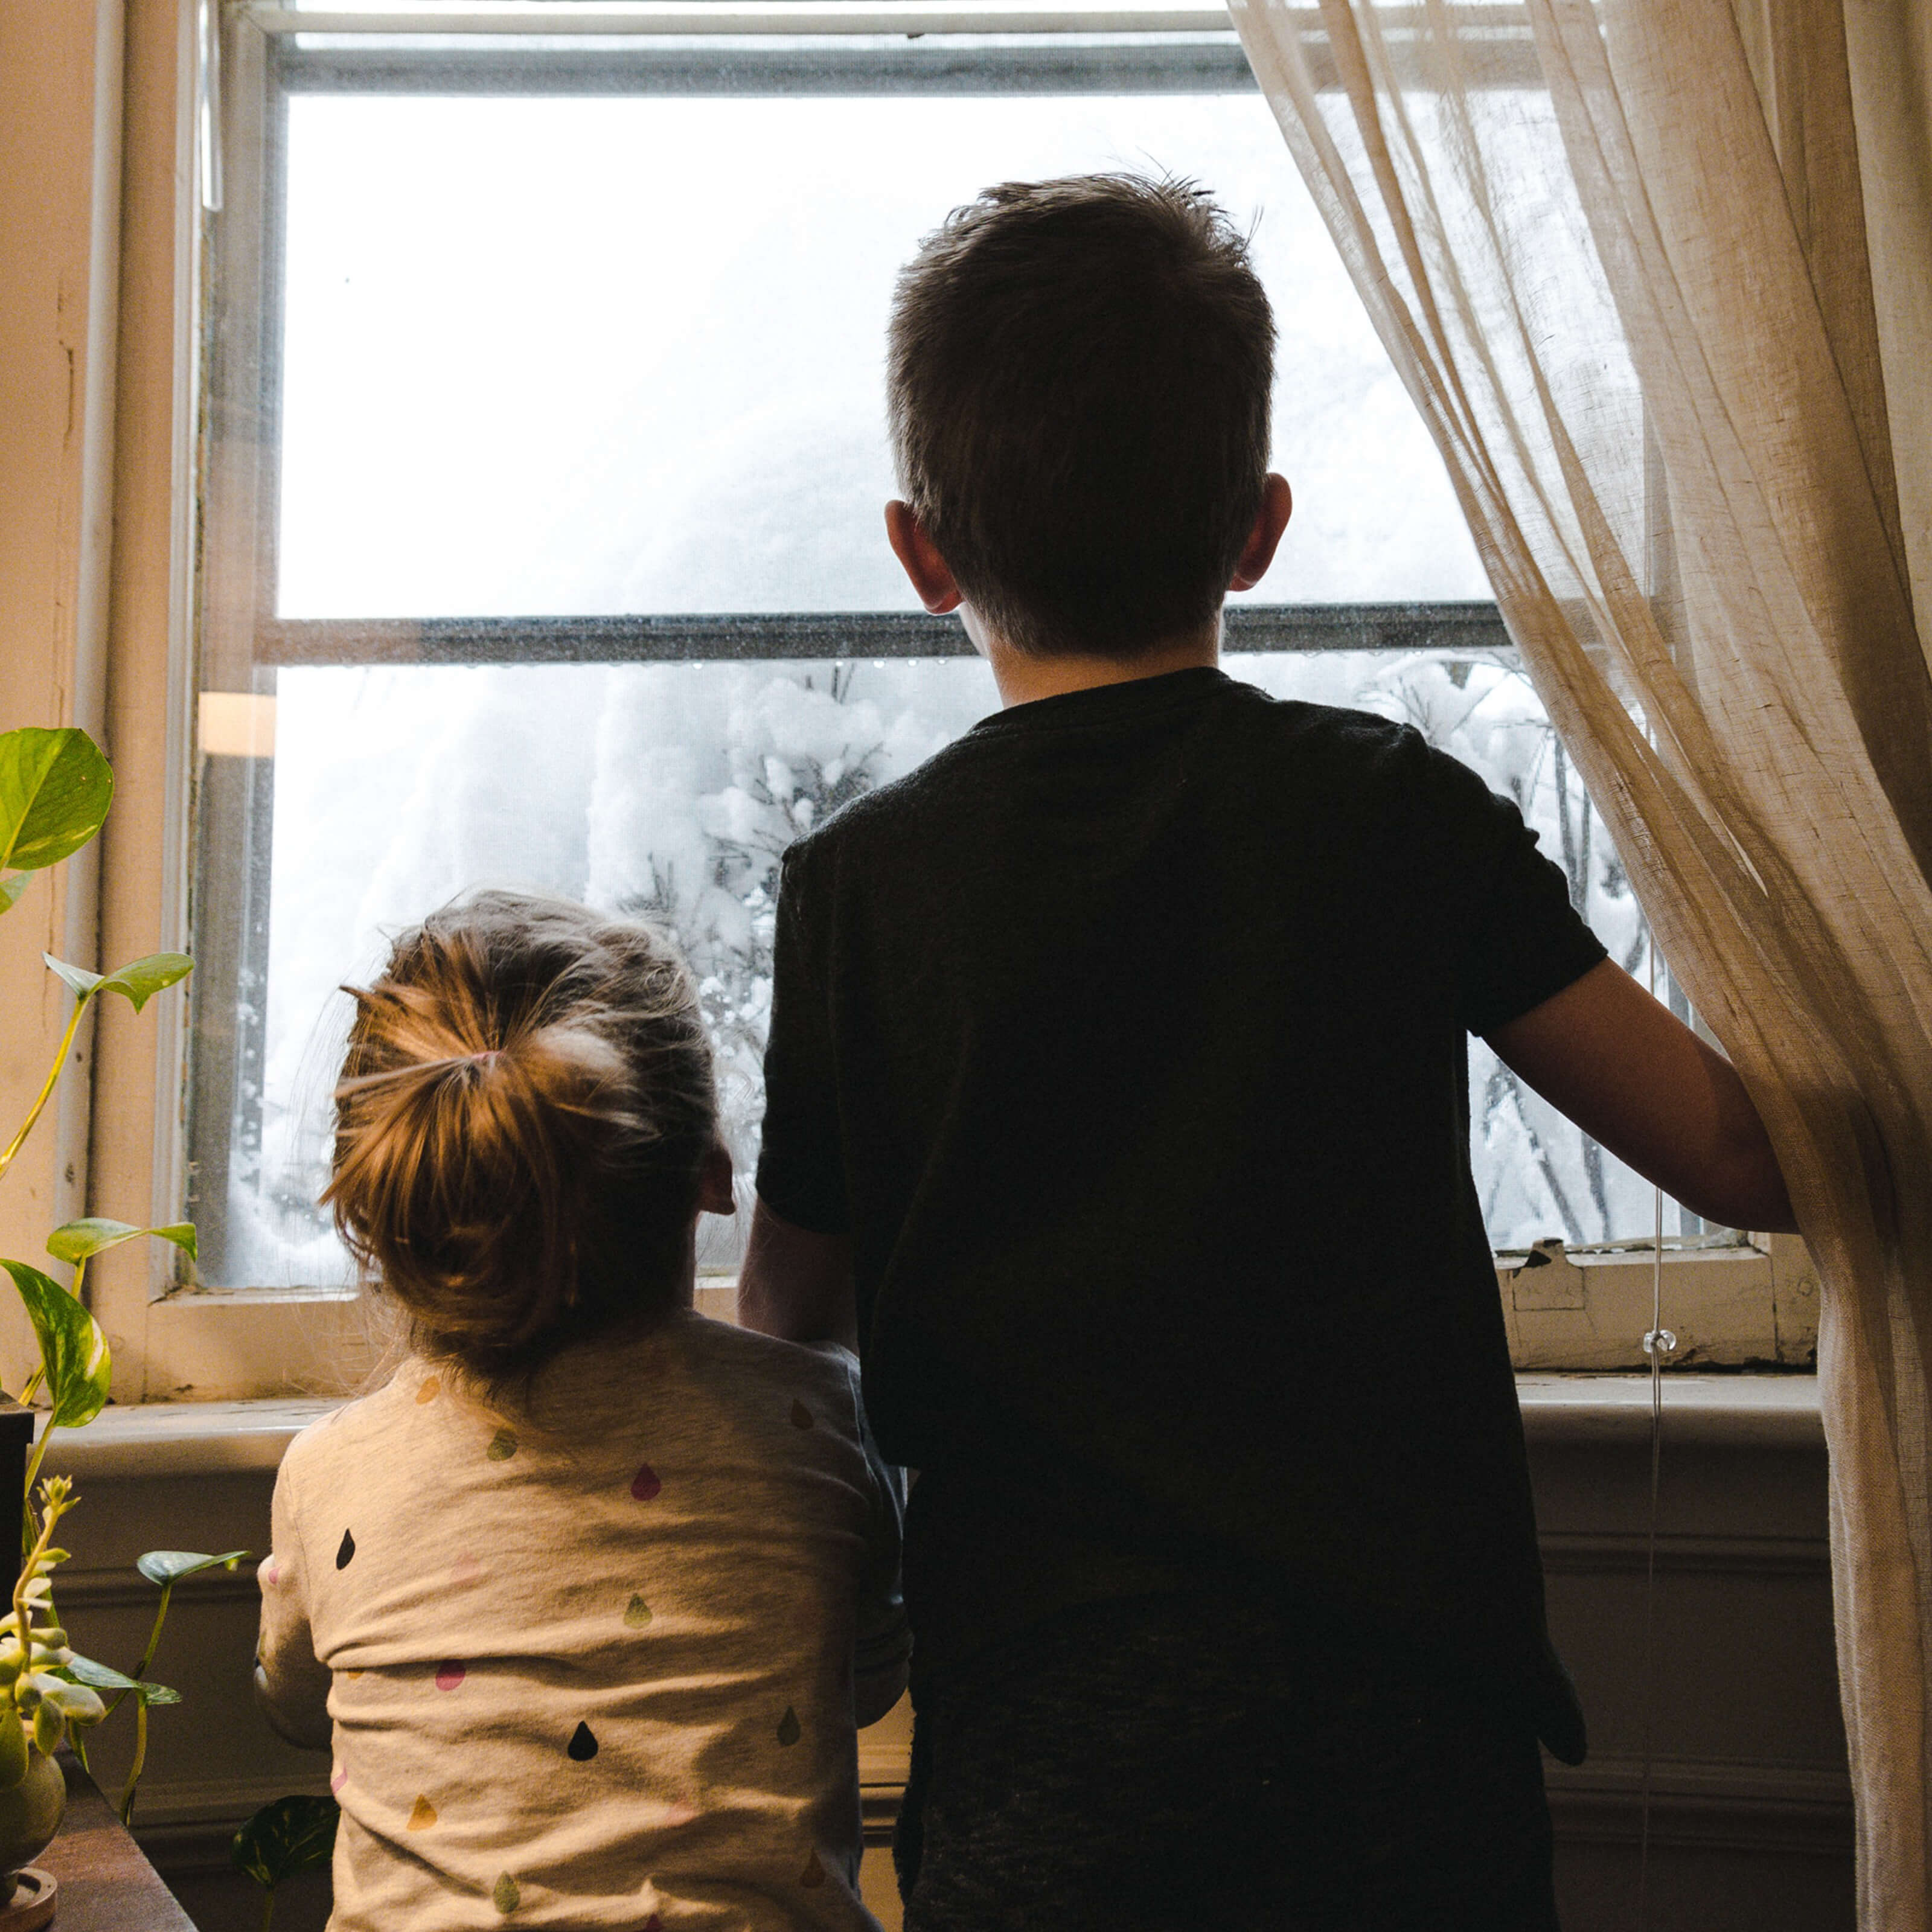 two boys staring out window